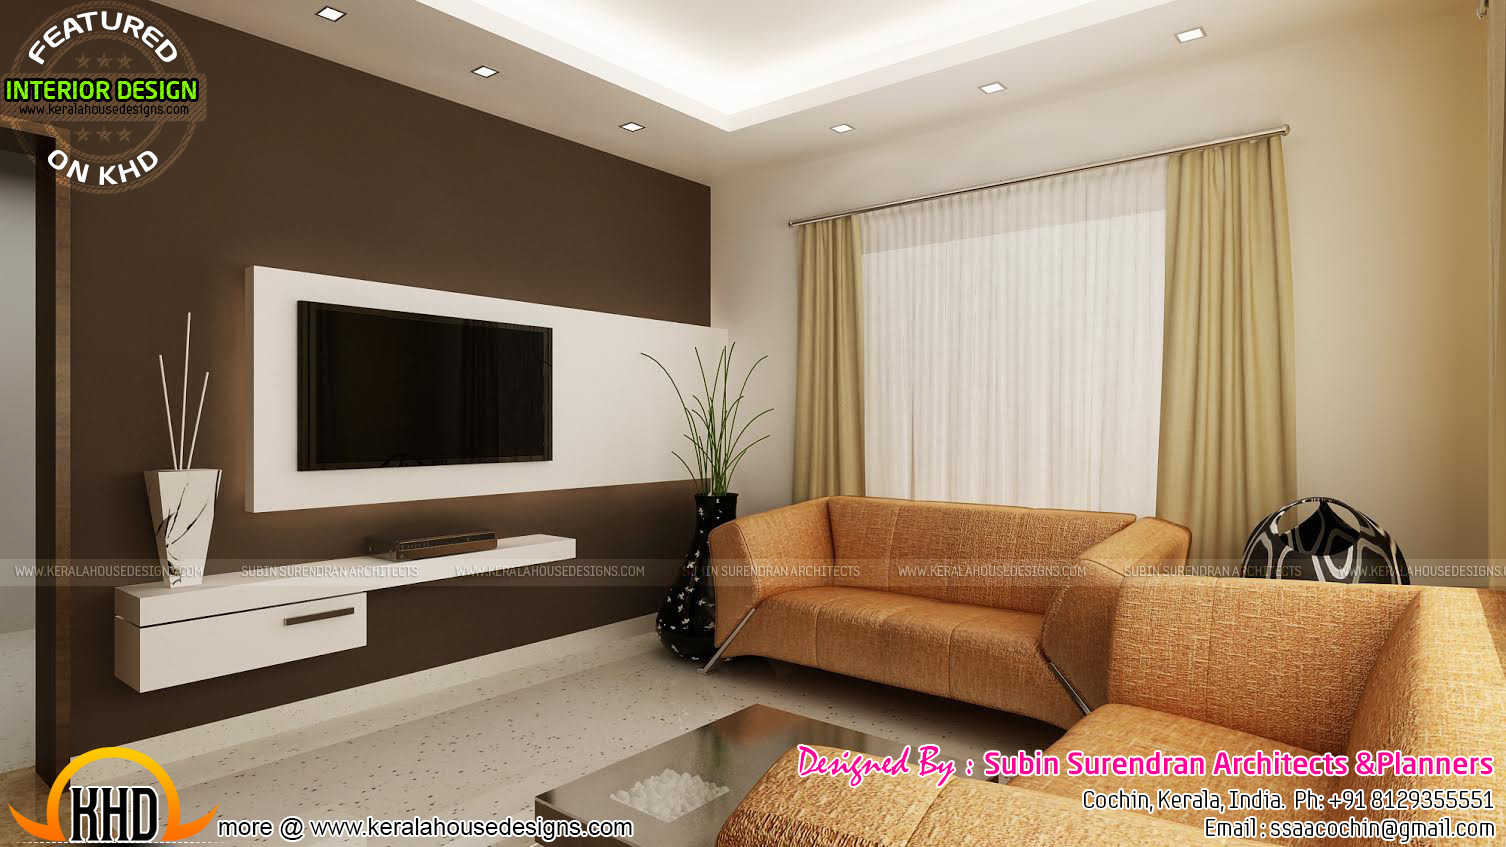 Living rooms modern kitchen interiors in kerala kerala for Interior design small bedroom indian